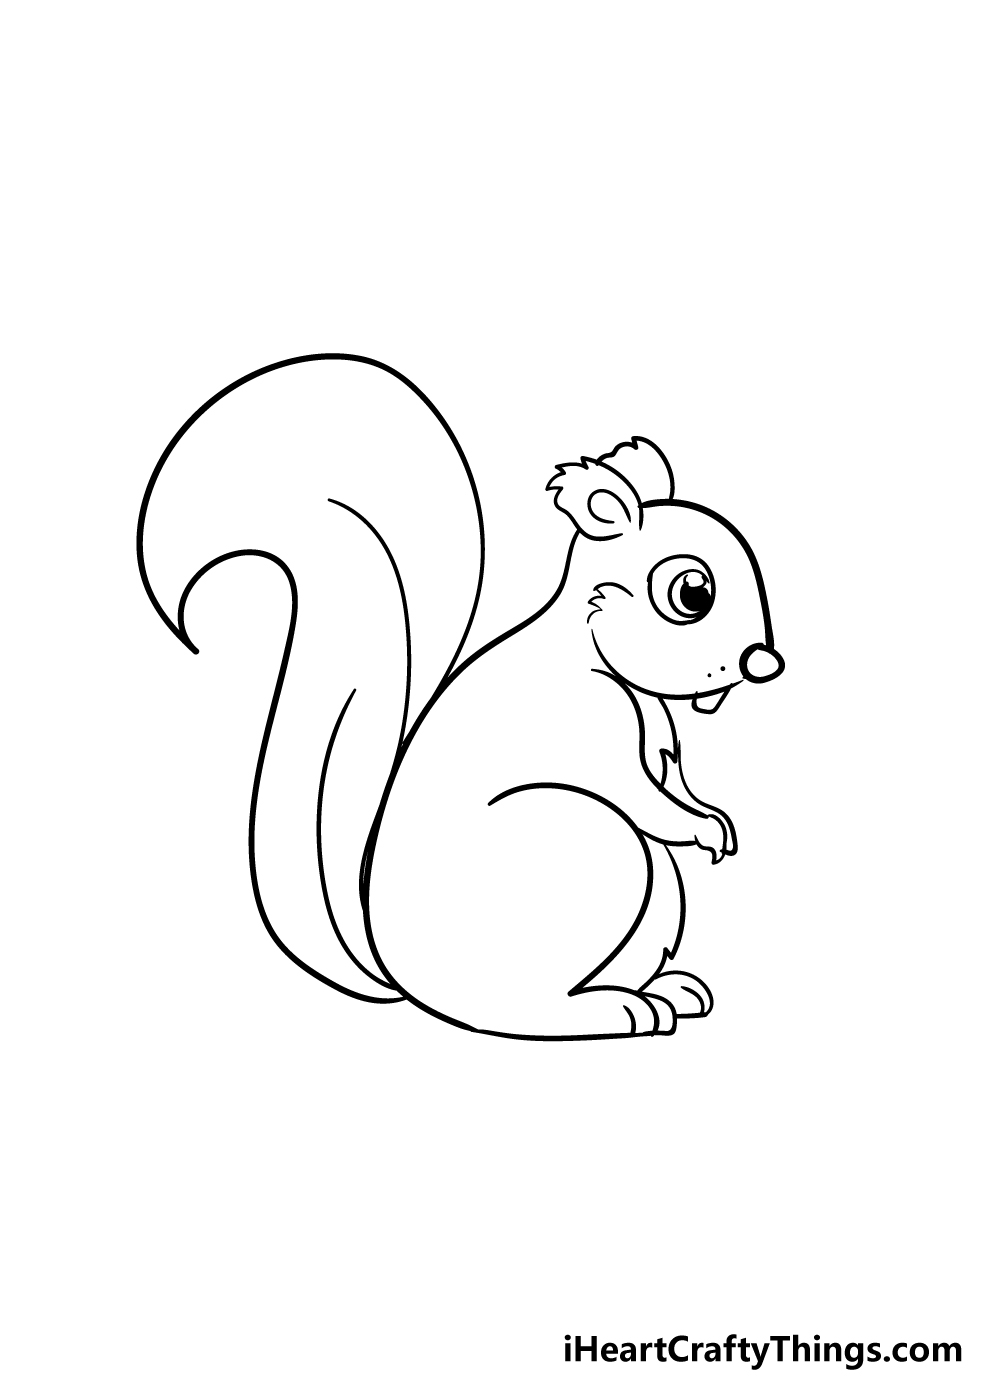 squirrel drawing step 5